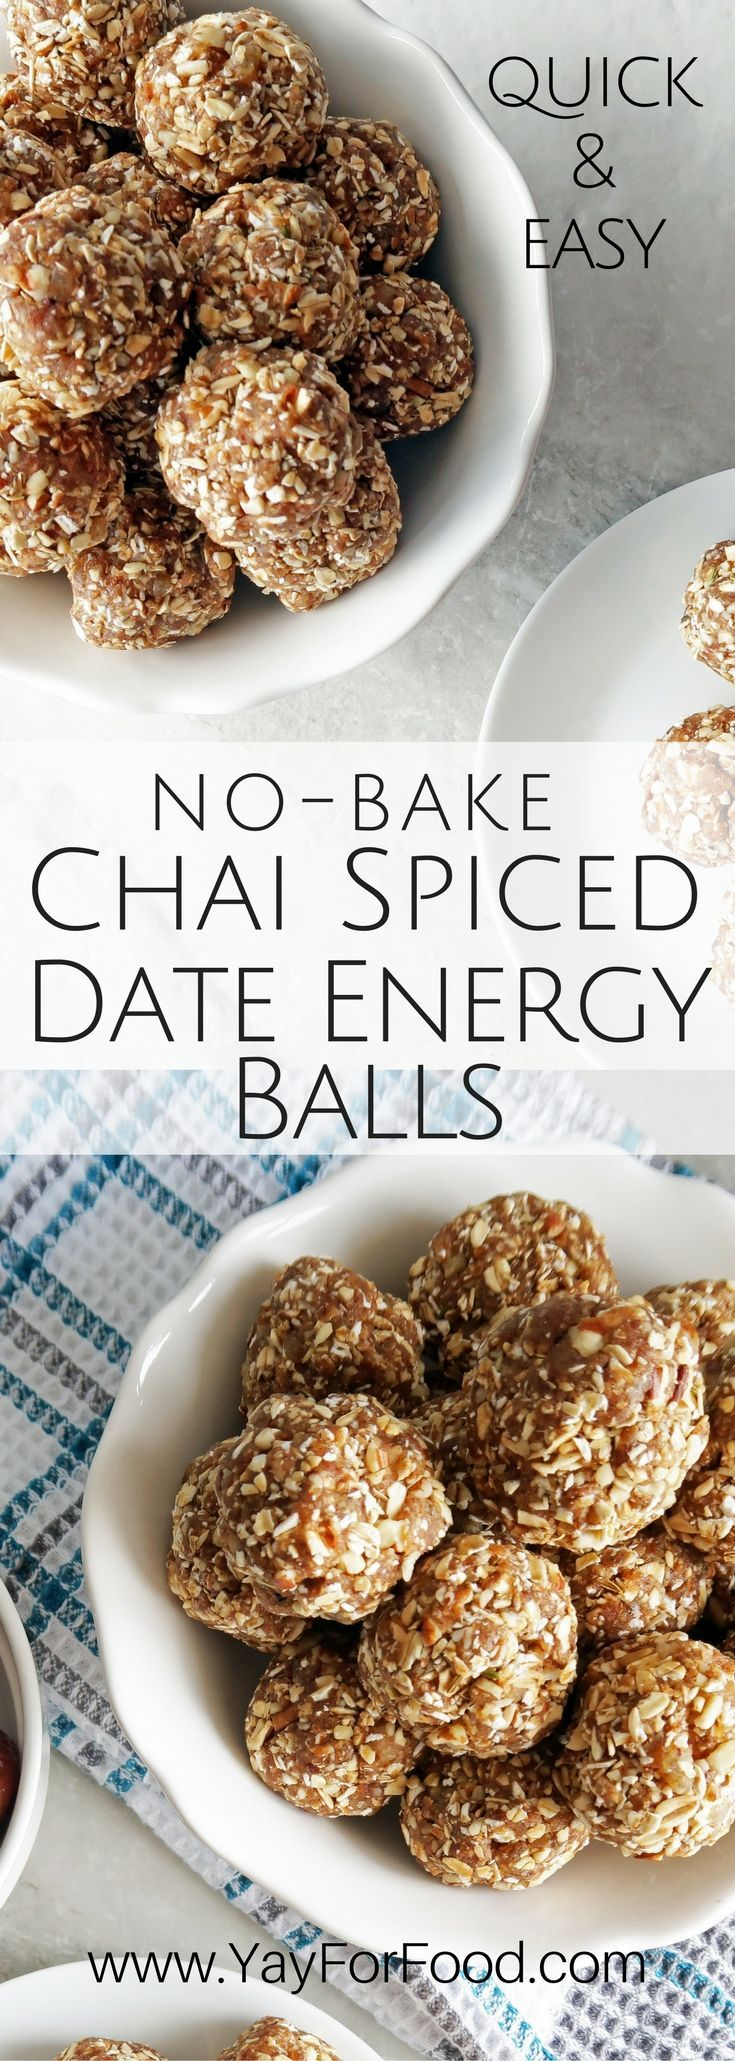 Snack on these tasty, portable chai-spiced Medjool date energy balls with dried peaches, pecans, and rolled oats! No-Bake | Vegan | Vegetarian | Gluten-free | Snacks | Desserts